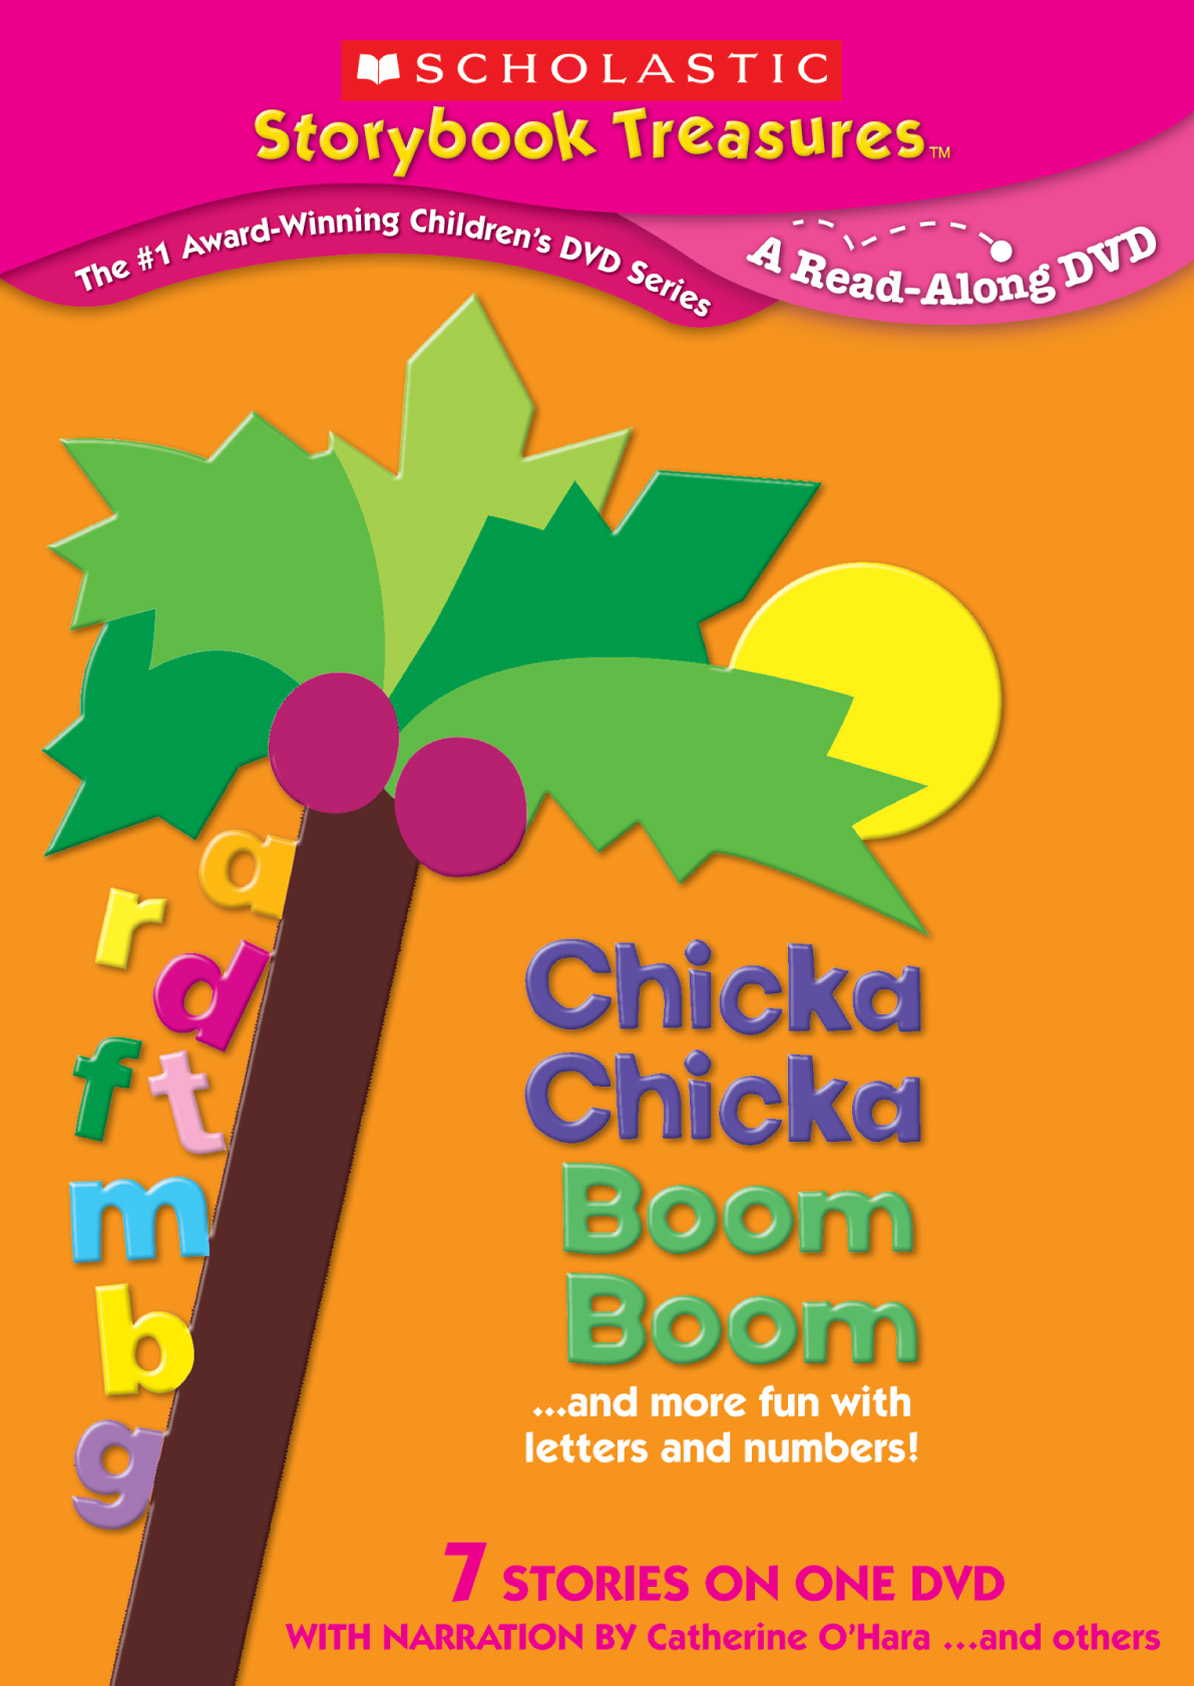 This is a photo of Soft Chicka Chicka Boom Boom Printable Book